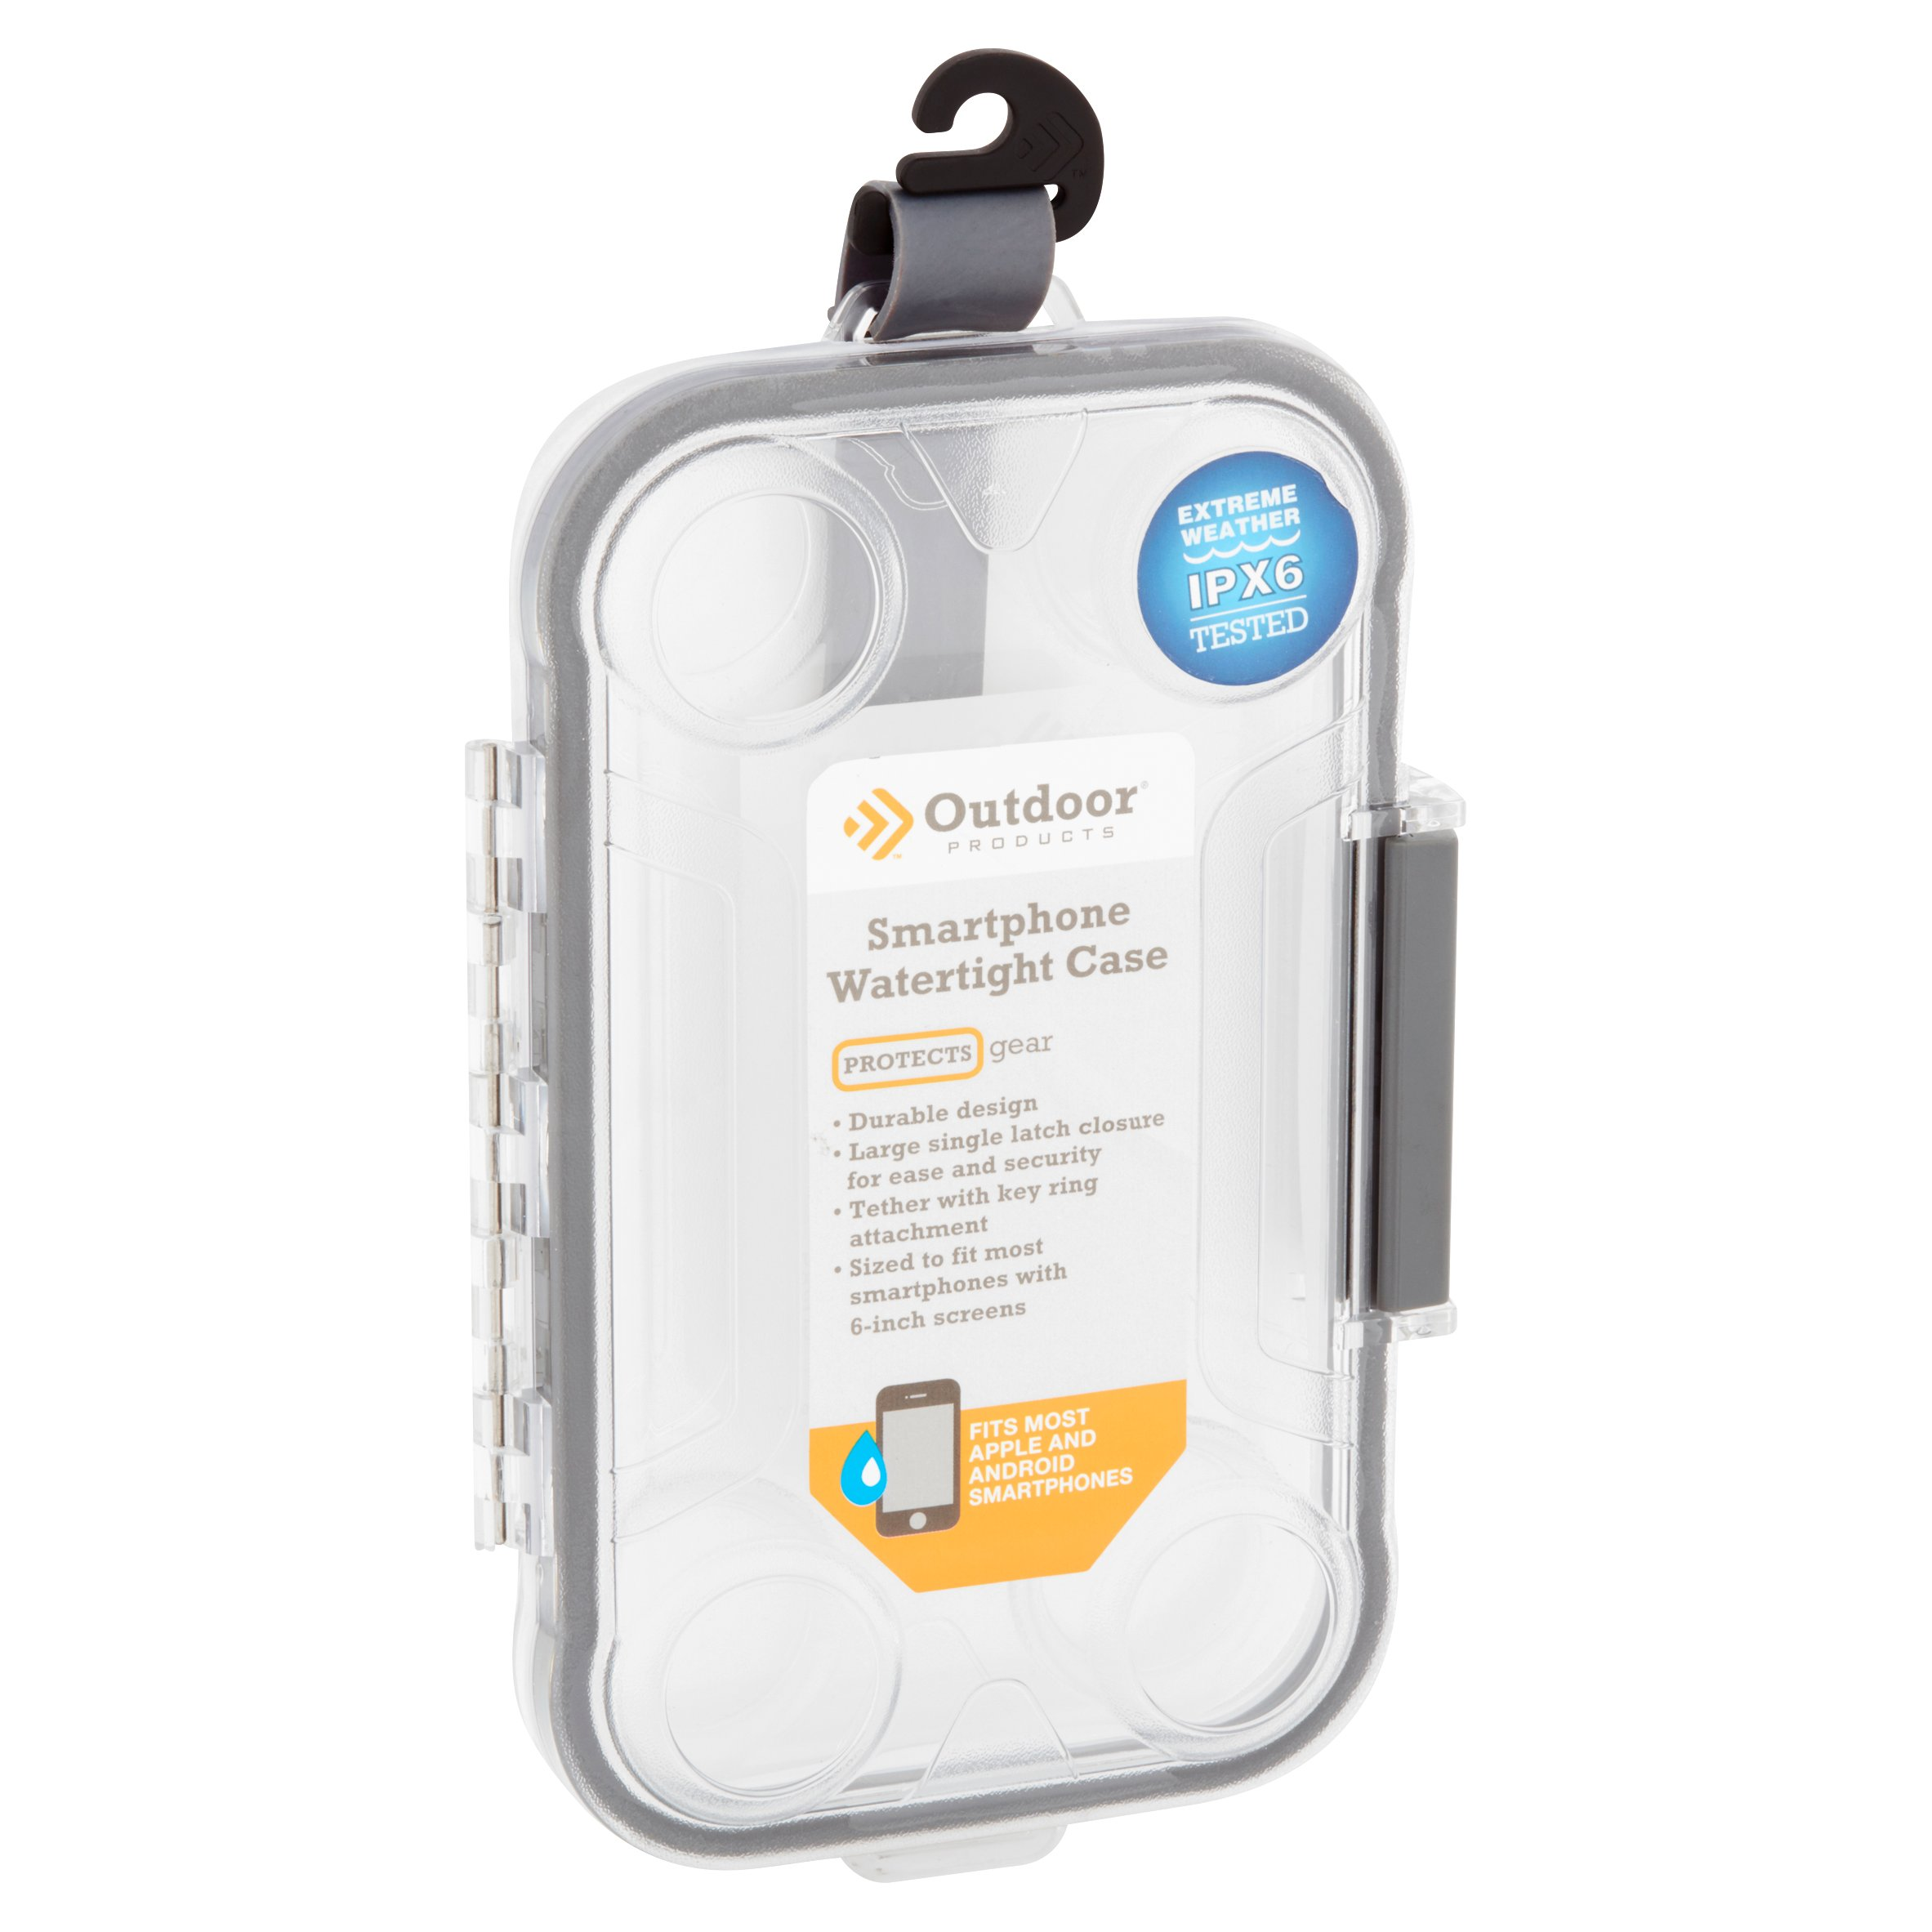 online store 5e964 52465 Outdoor Products Smartphone Watertight Case - Box, Clear - Walmart.com